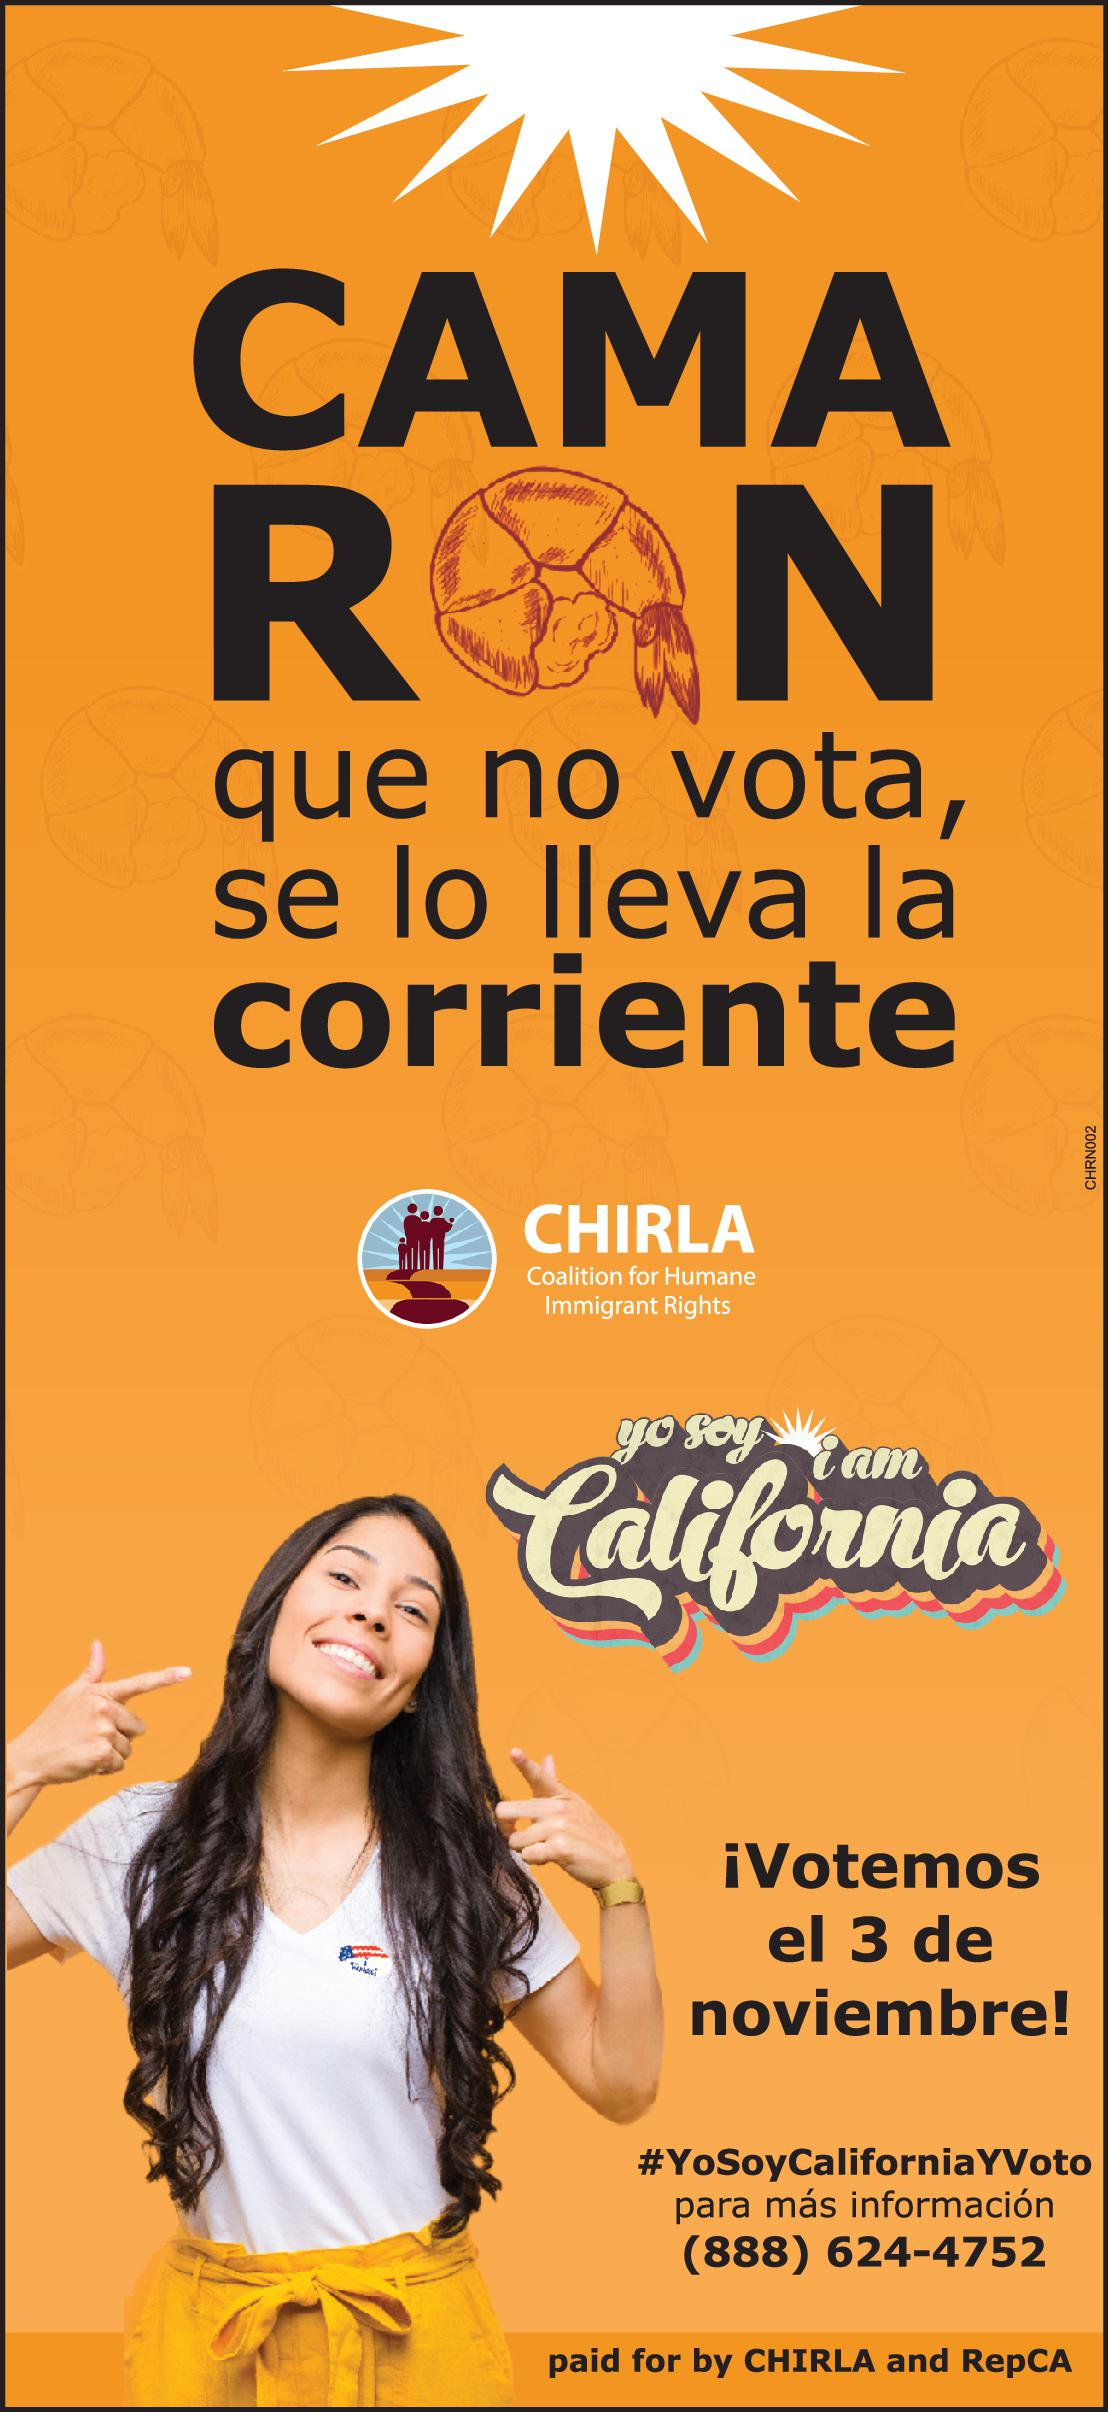 Coalition For Humane Inmigrant Rights/chirla